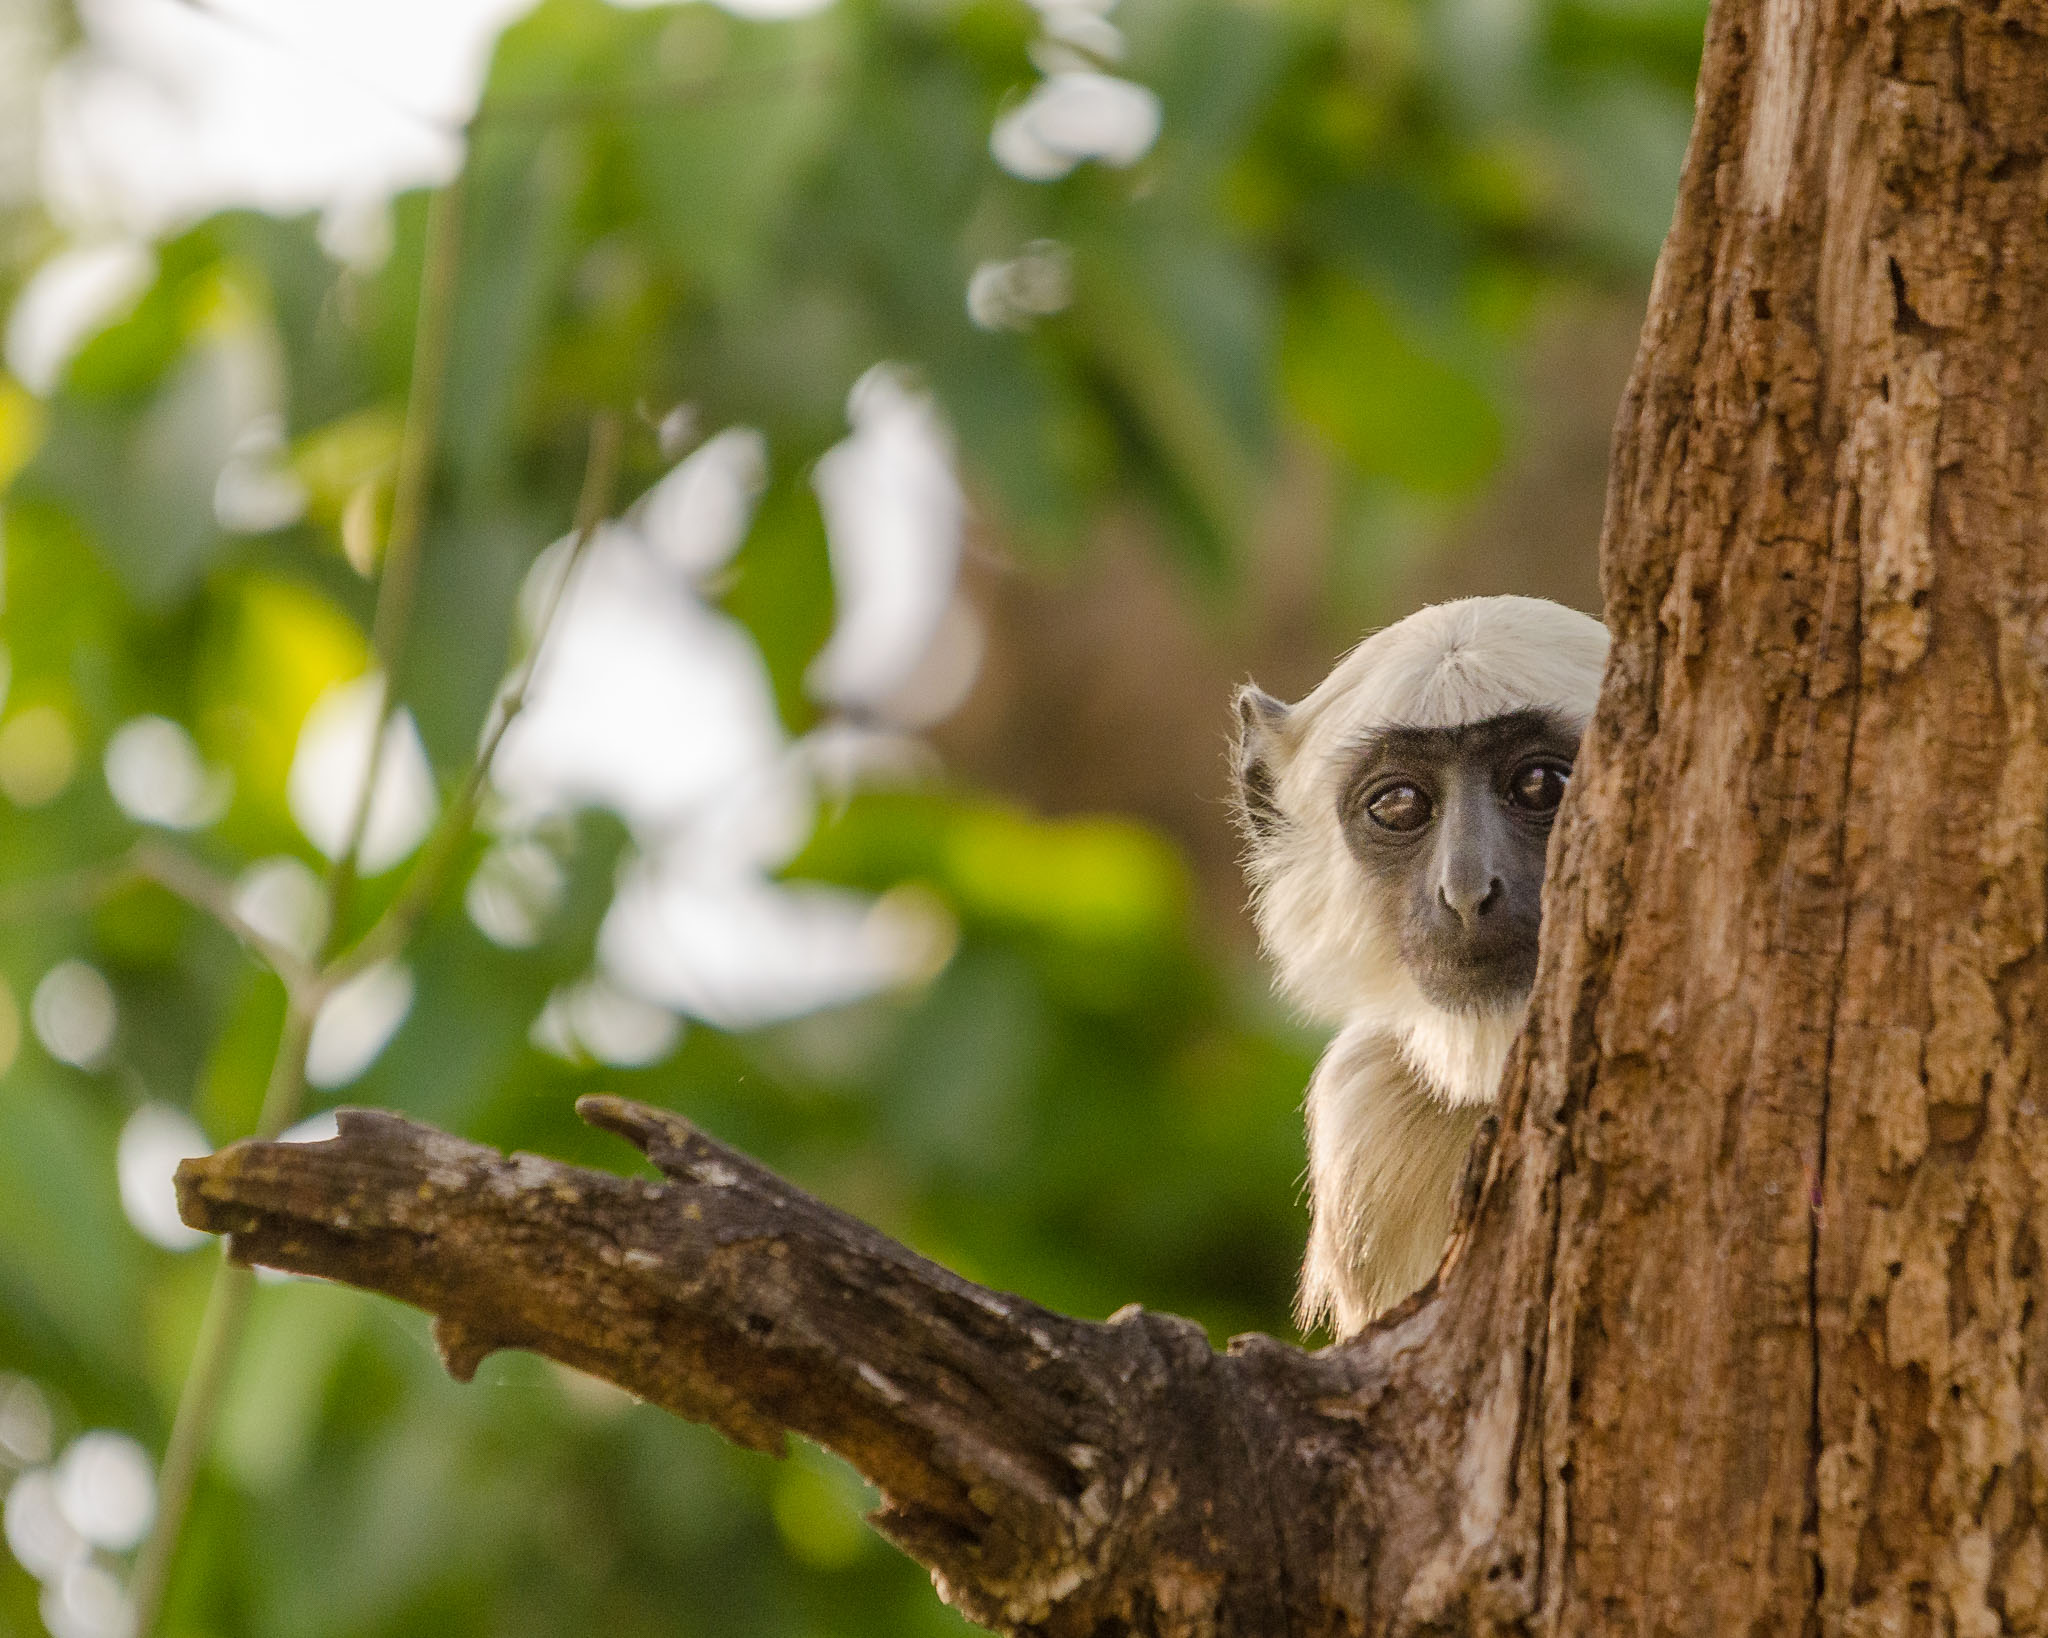 Monkeys are very curious and almost always check you out while you photograph them. However they do like their security and stay high up or somewhere relatively safe.